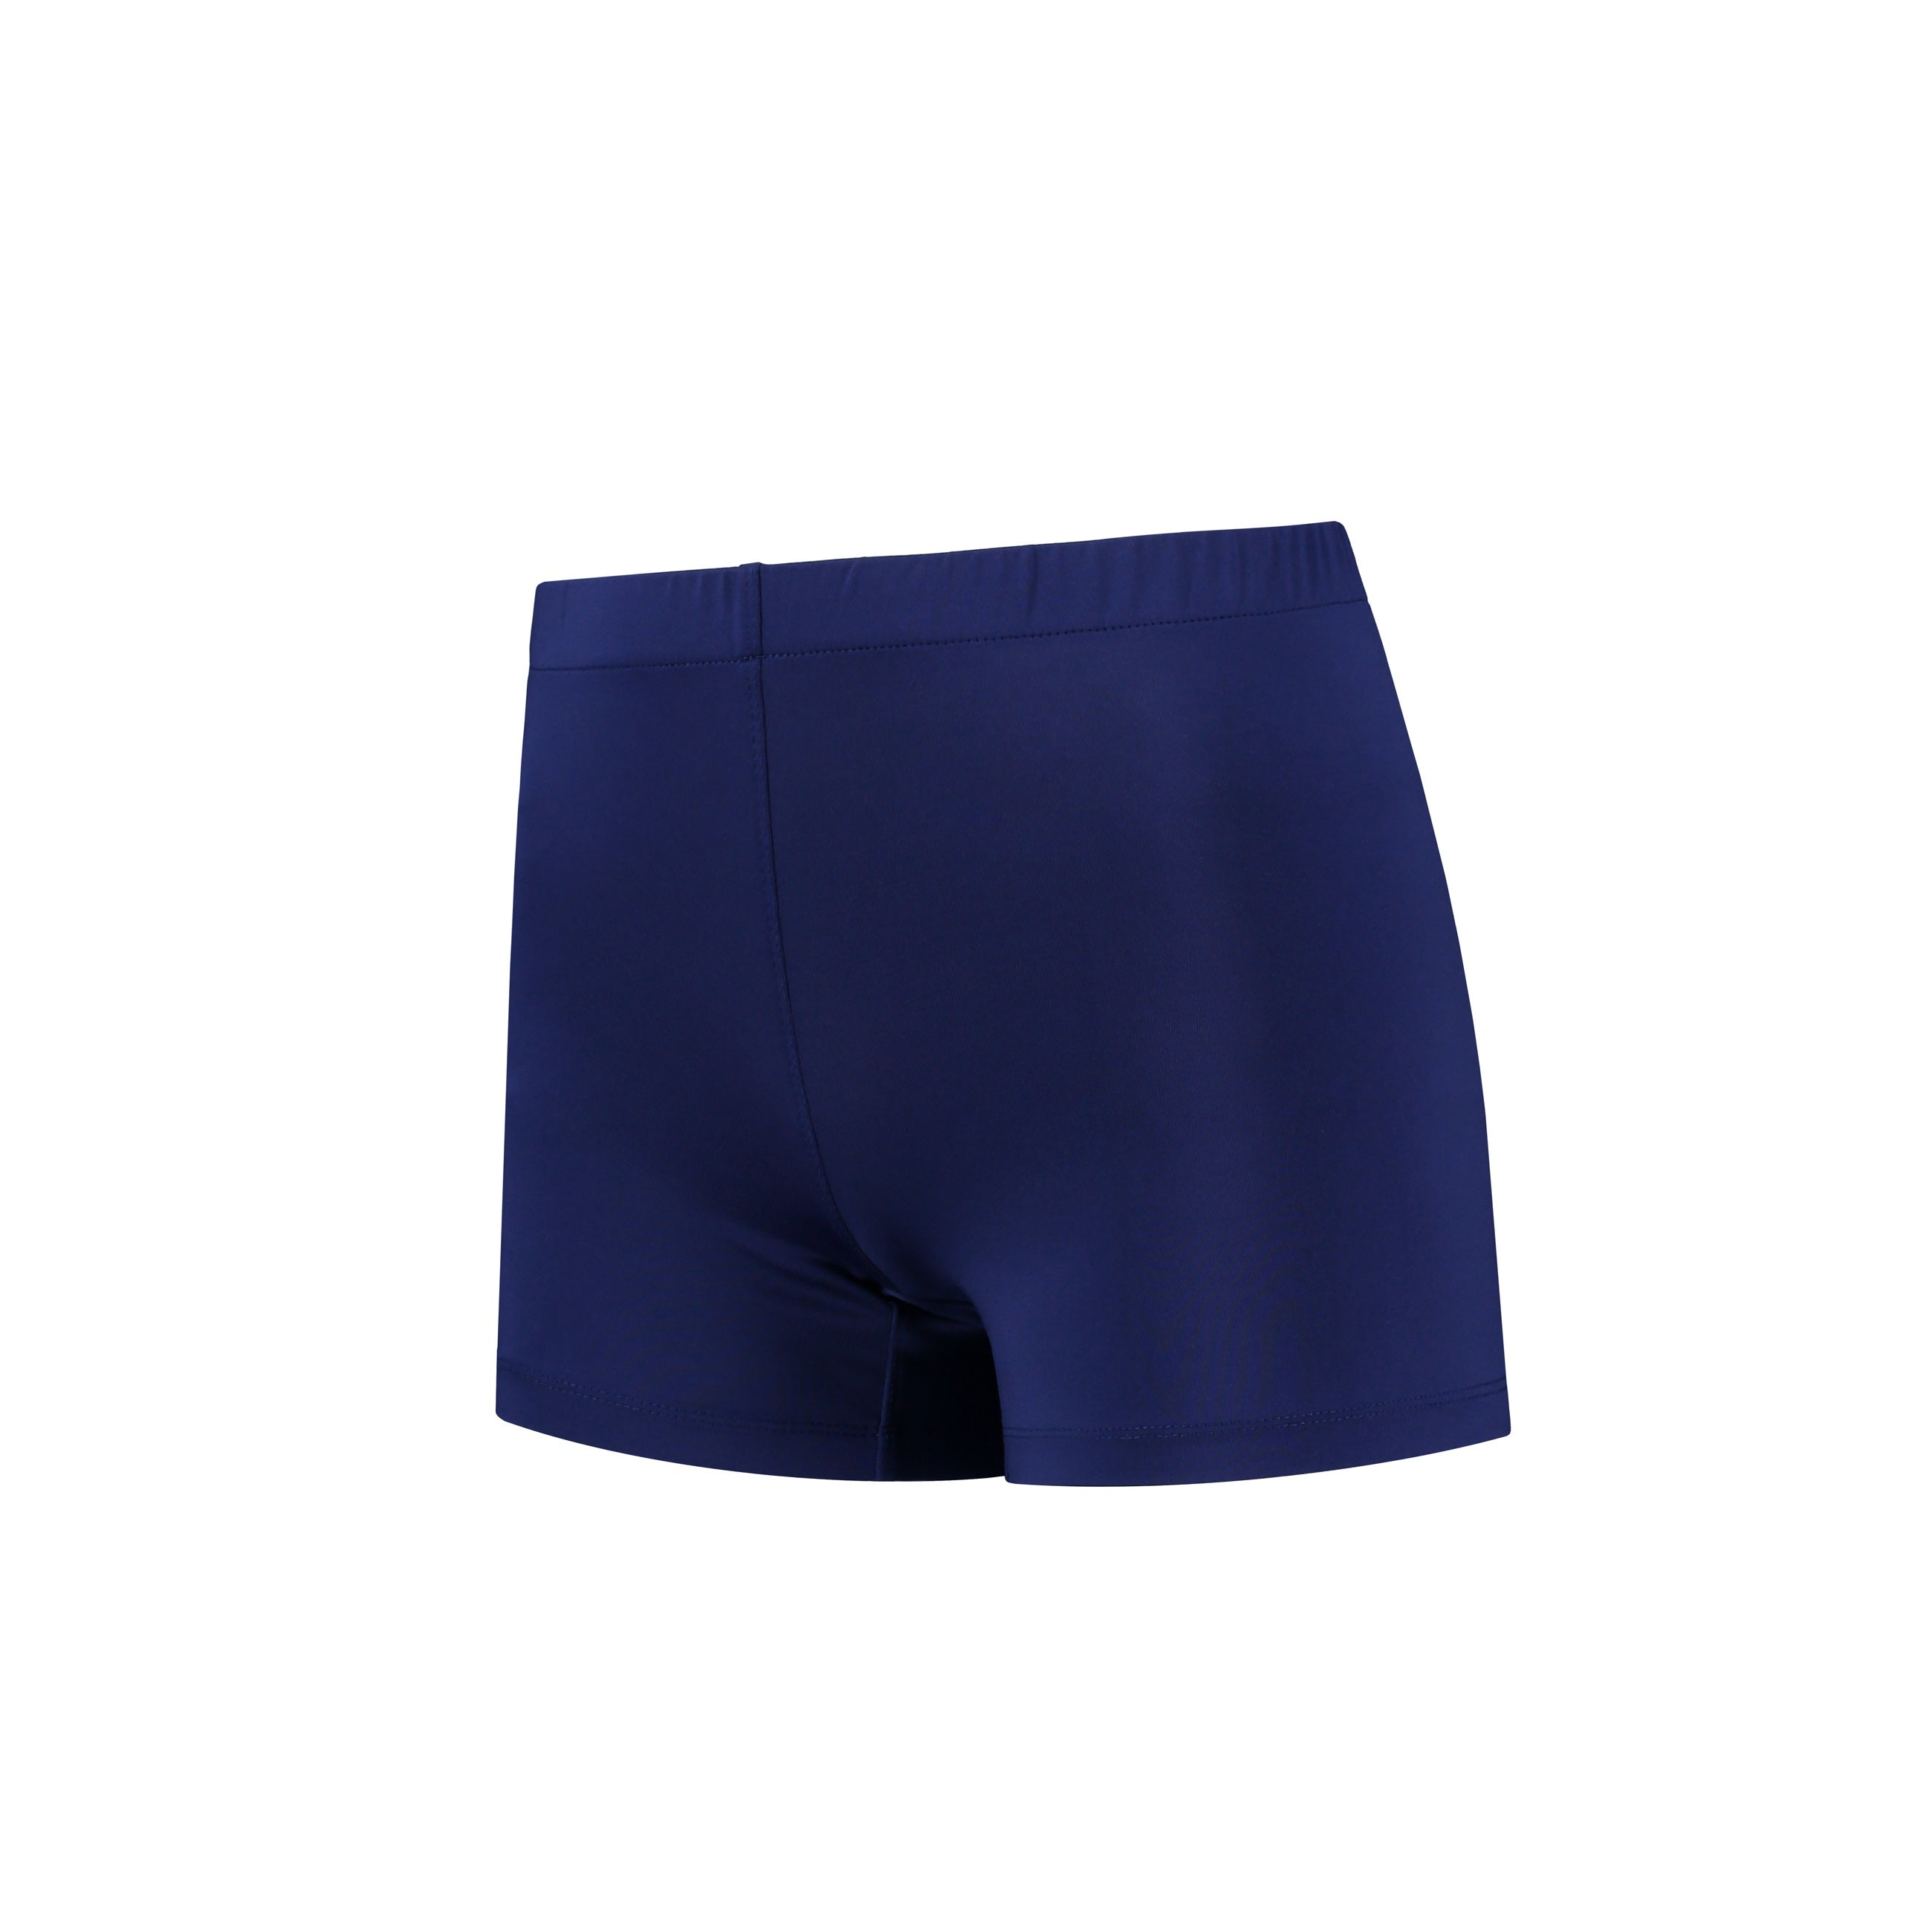 Biclot Short Blue